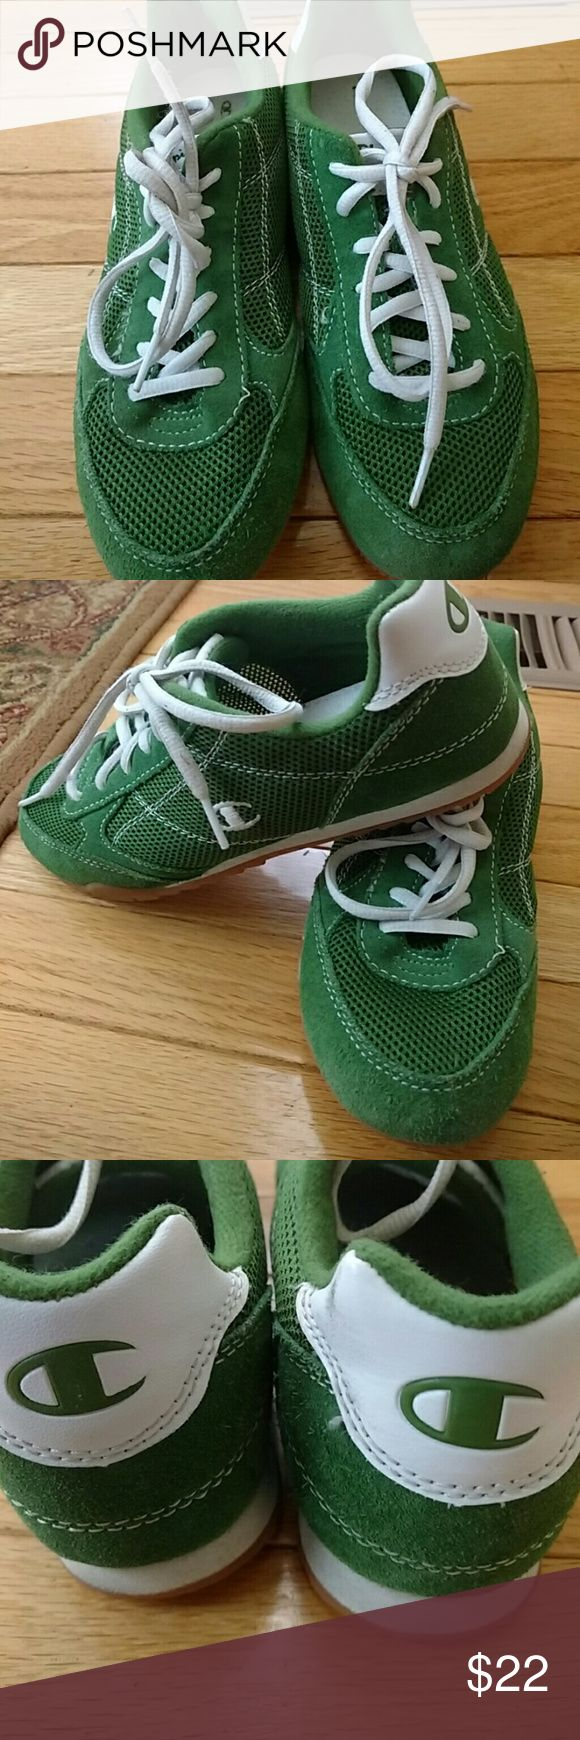 Champs Beautiful green shoes/girls Rubber soles worn only a few times Champs Shoes Sneakers